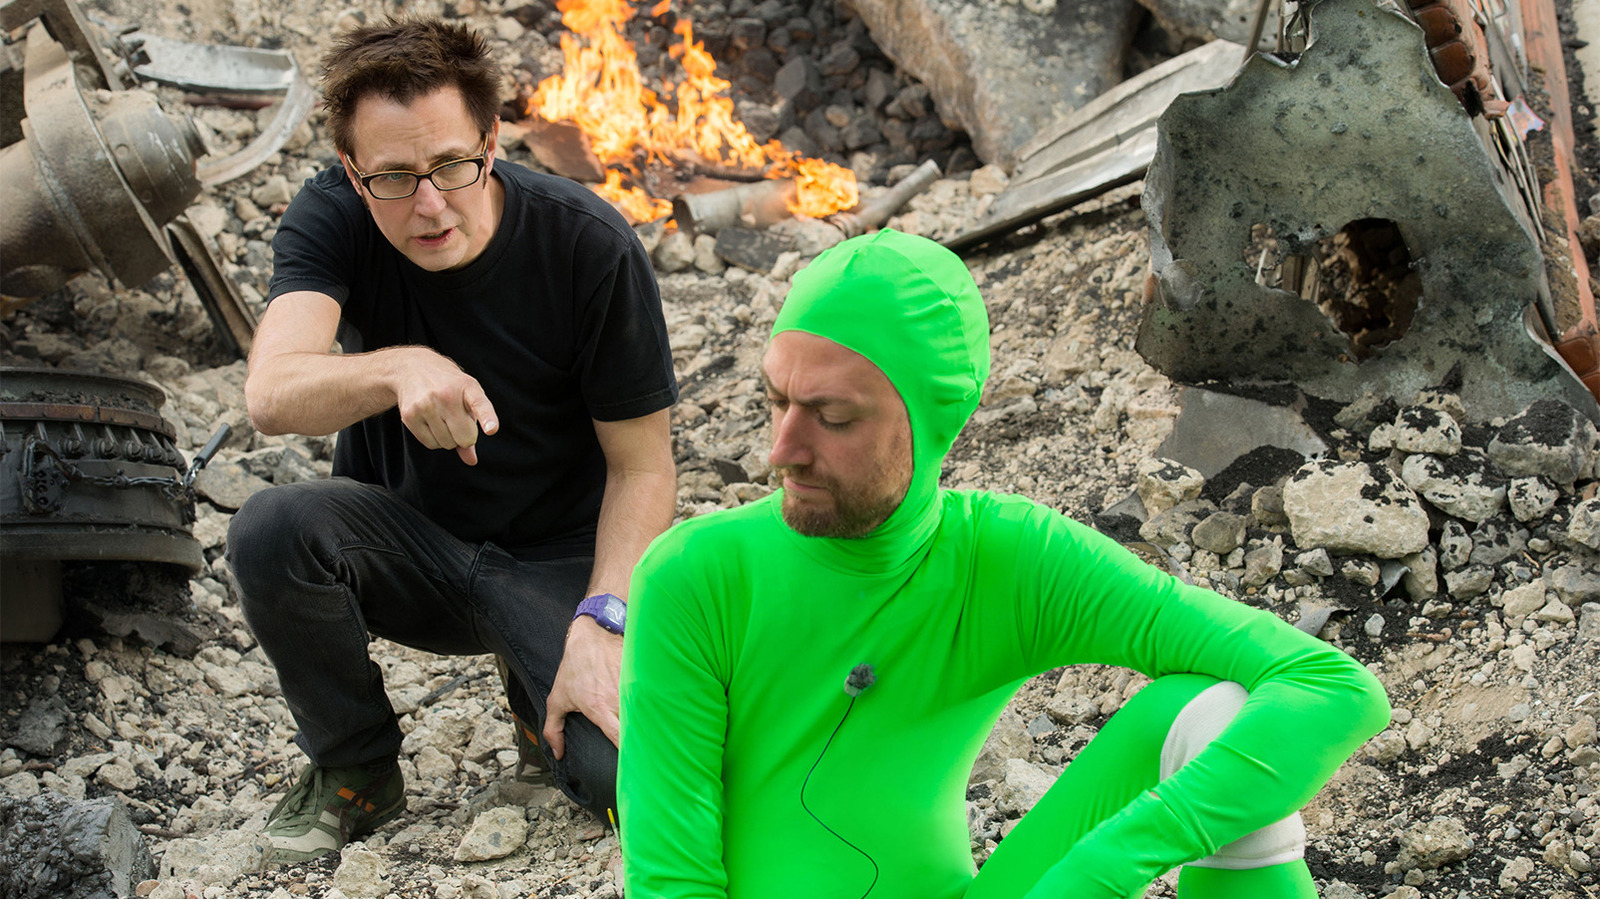 Why Guardians Of The Galaxy Vol. 3 Won't Use StageCraft Technology, According To James Gunn - /Film